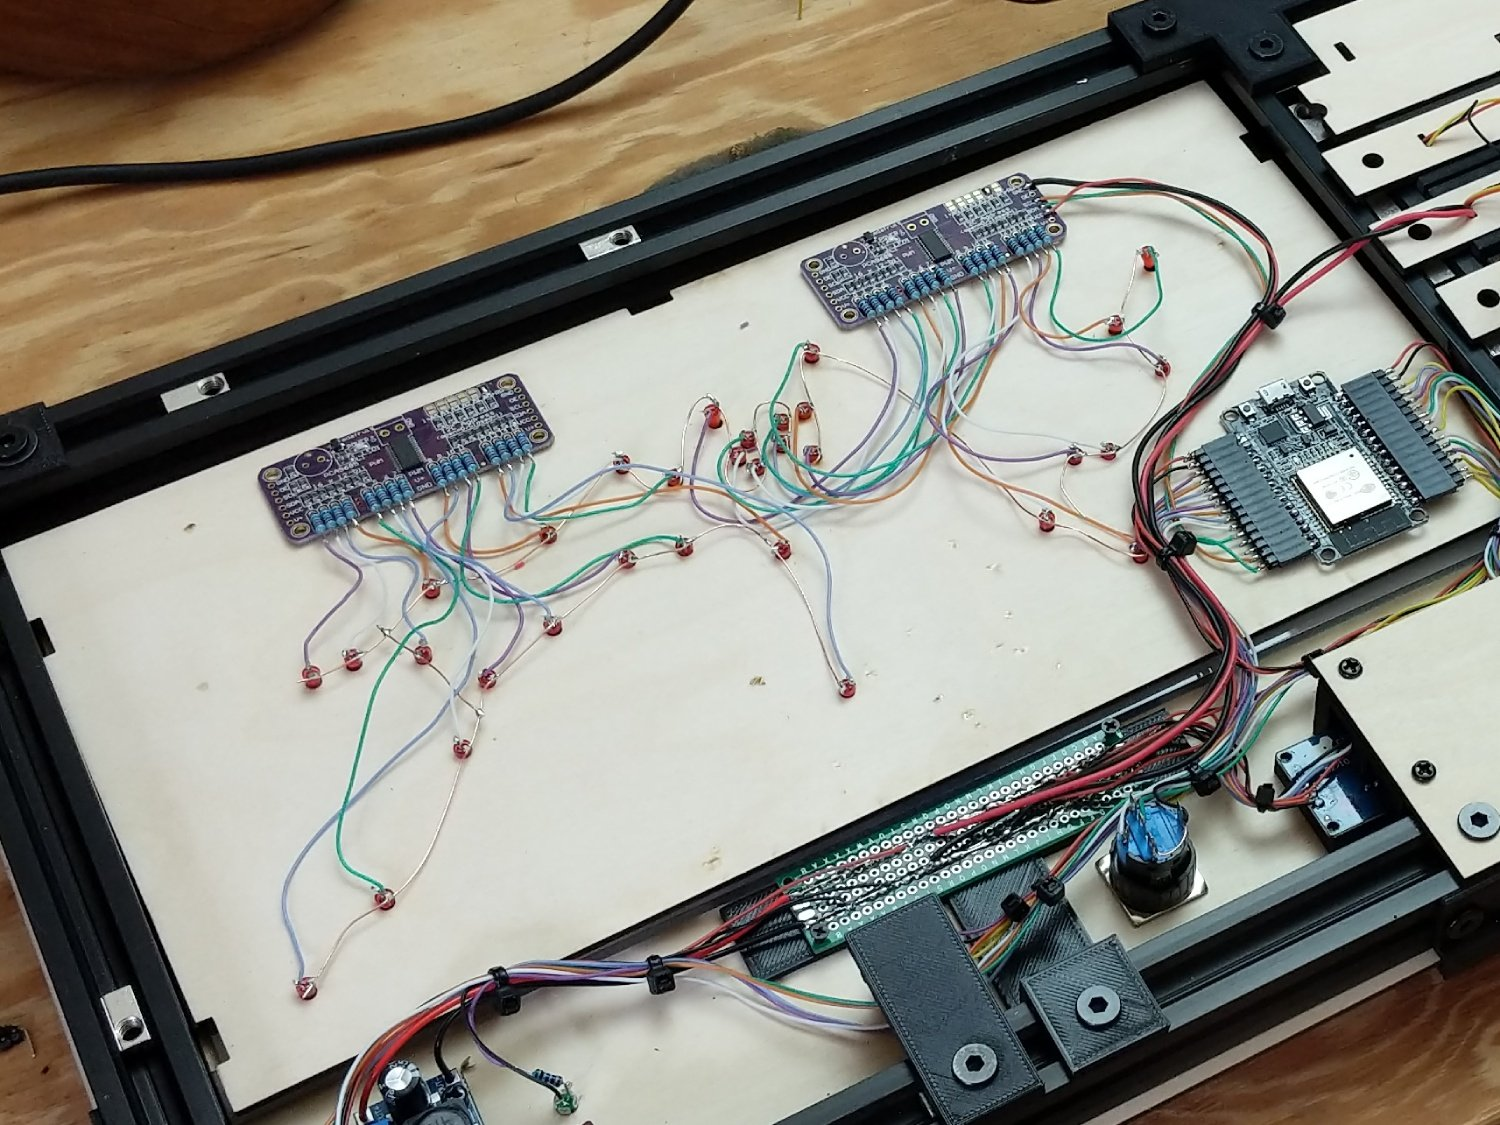 covid-19-dashboard-world-map-leds-wiring